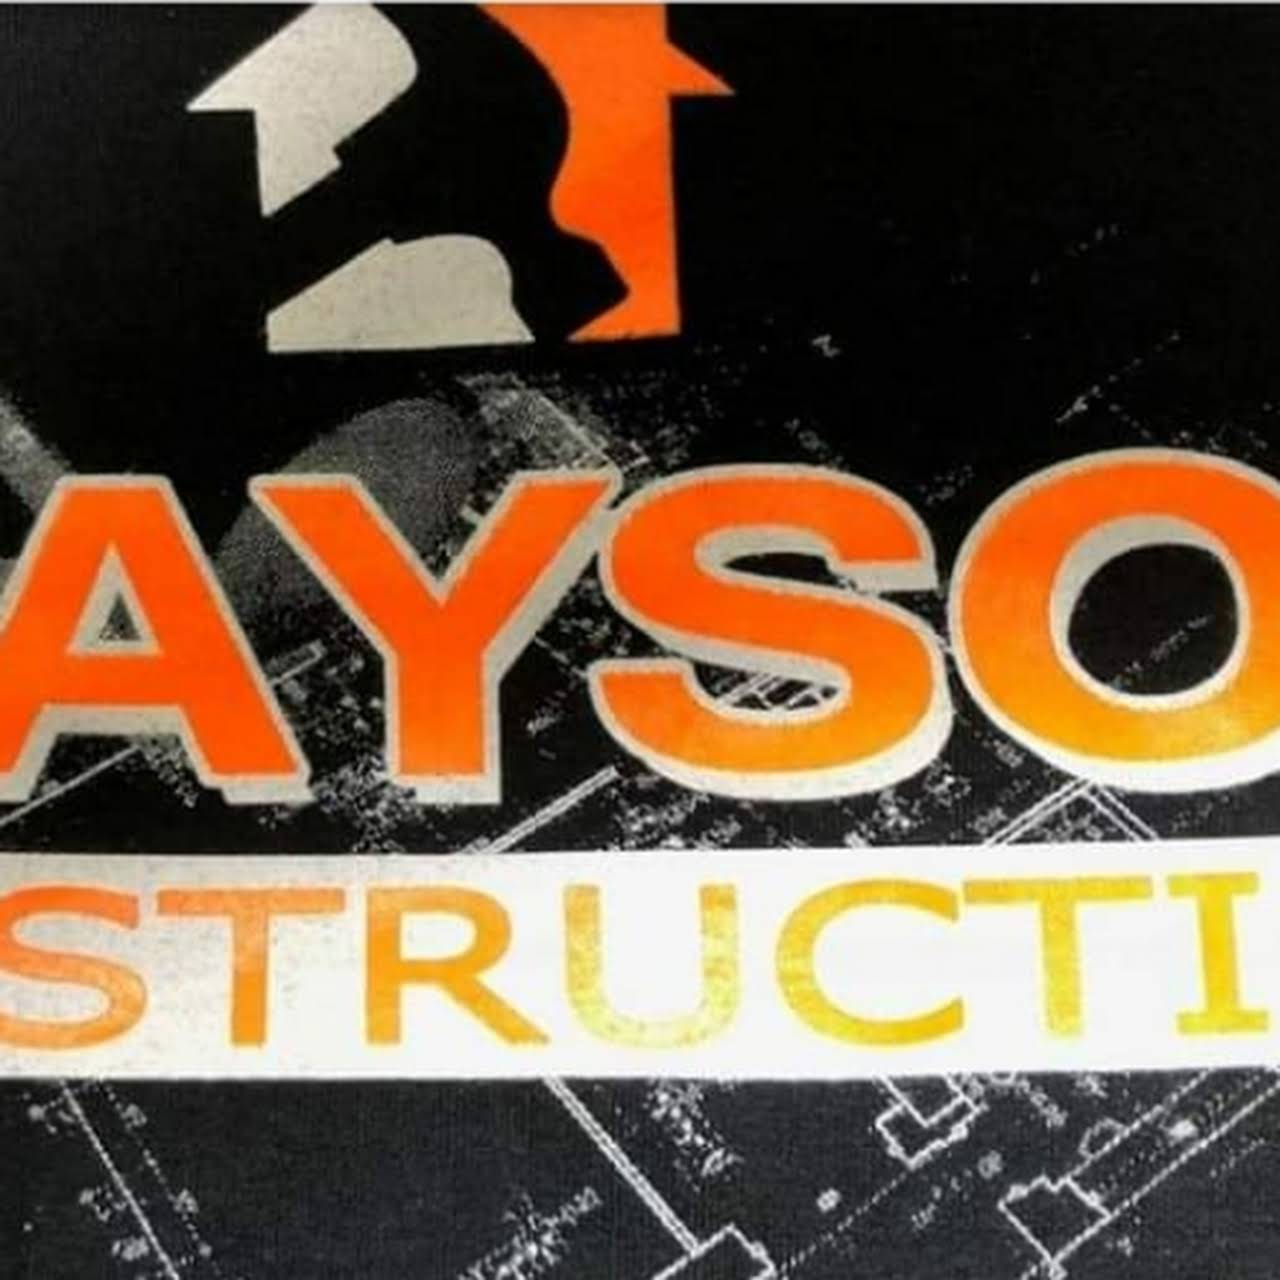 Clayson Construction - General Contractor in Western New York